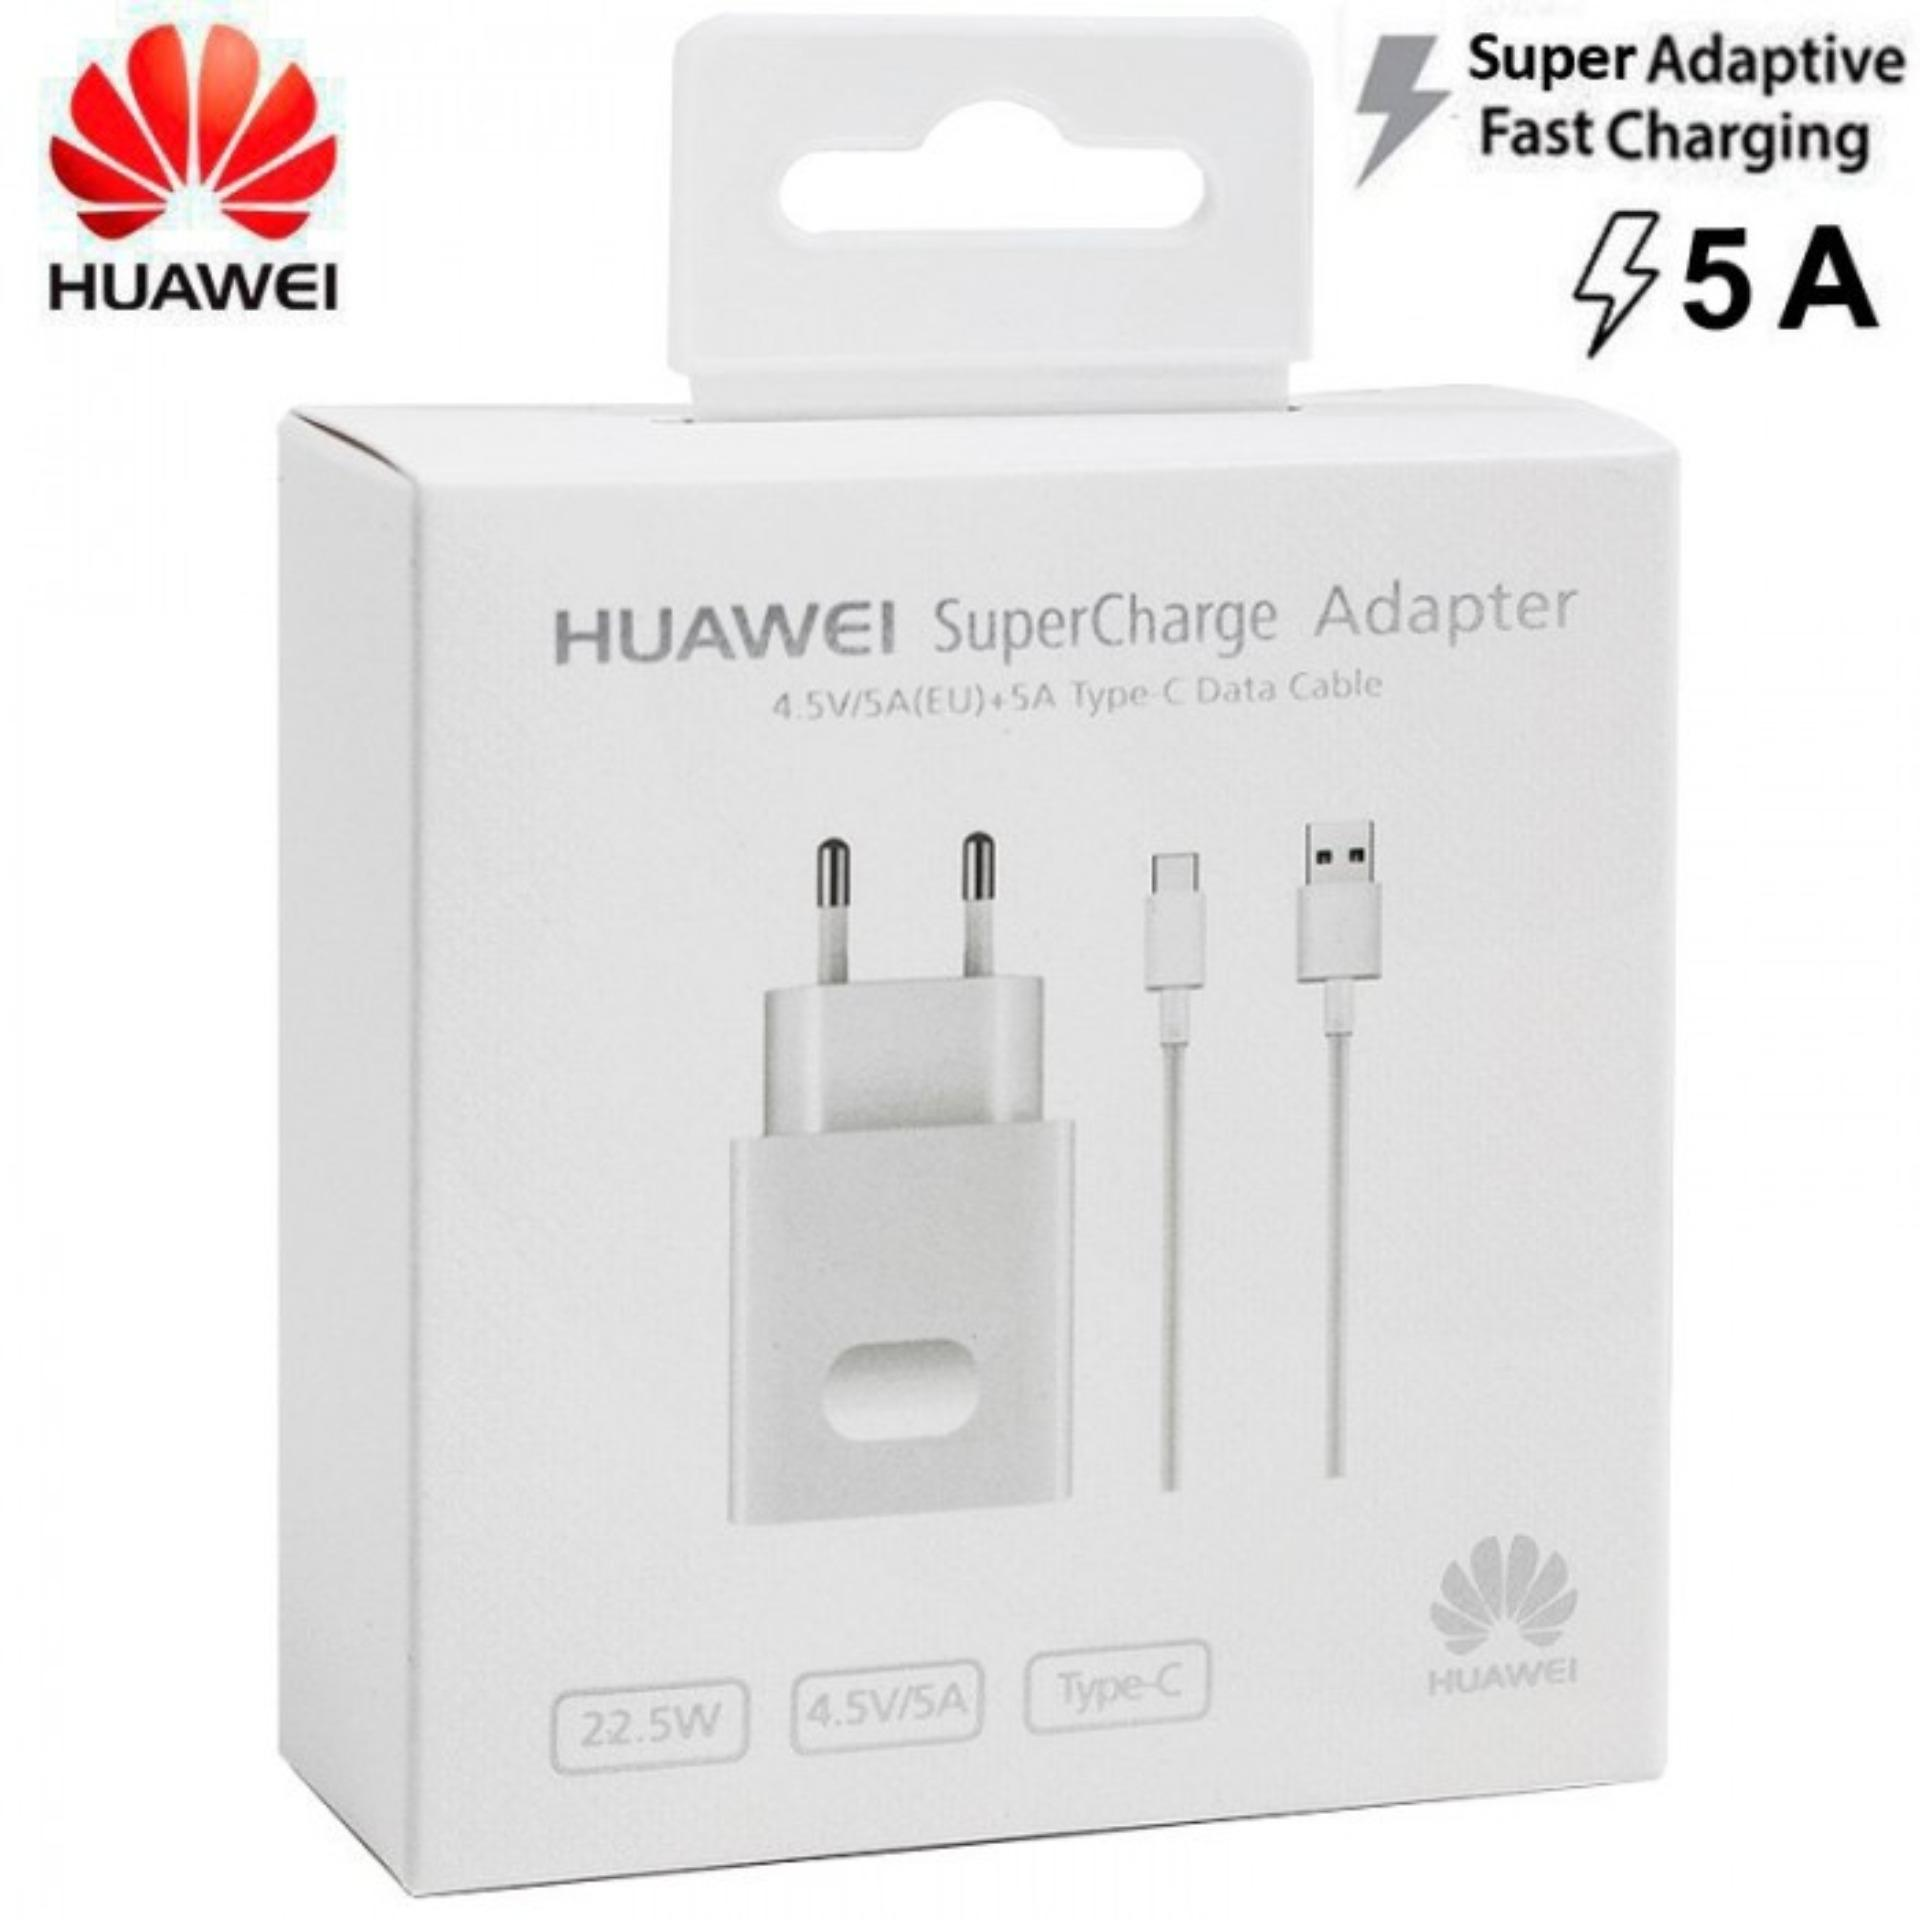 [gratis ongkir] huawei super charge / super fast charger 22.5w / 5a usb type c cable for huawei mate 20 / mate 30 pro 100% original